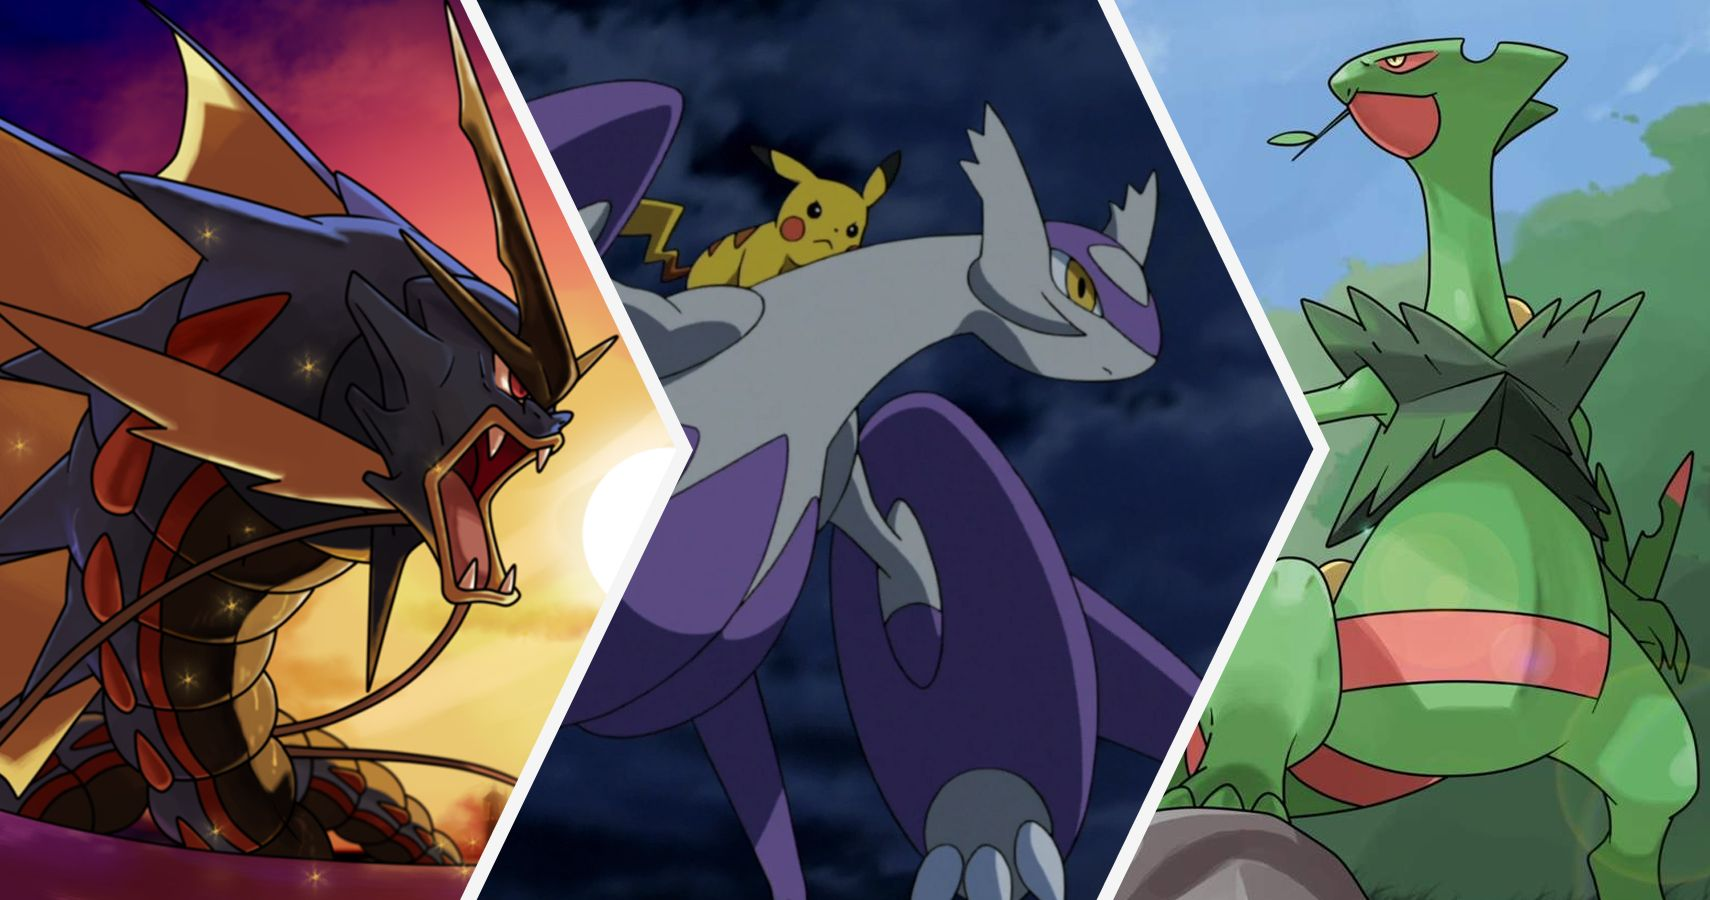 Pokémon 20 Mega Evolutions Everyone Uses That Are Actually Useless